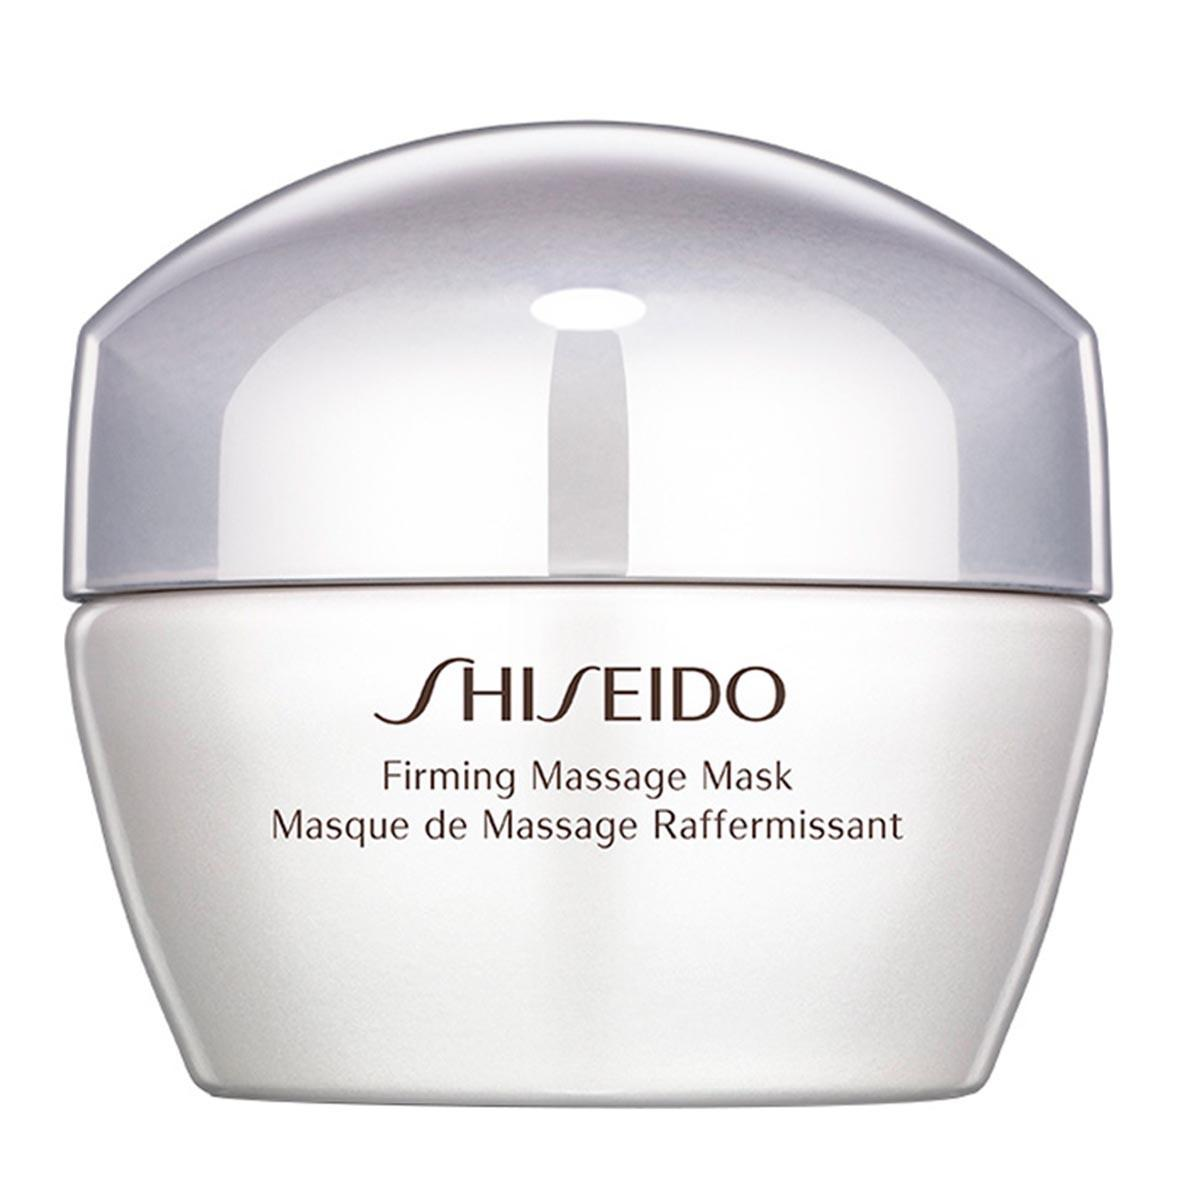 Shiseido Firming Massage Mask 50 ml